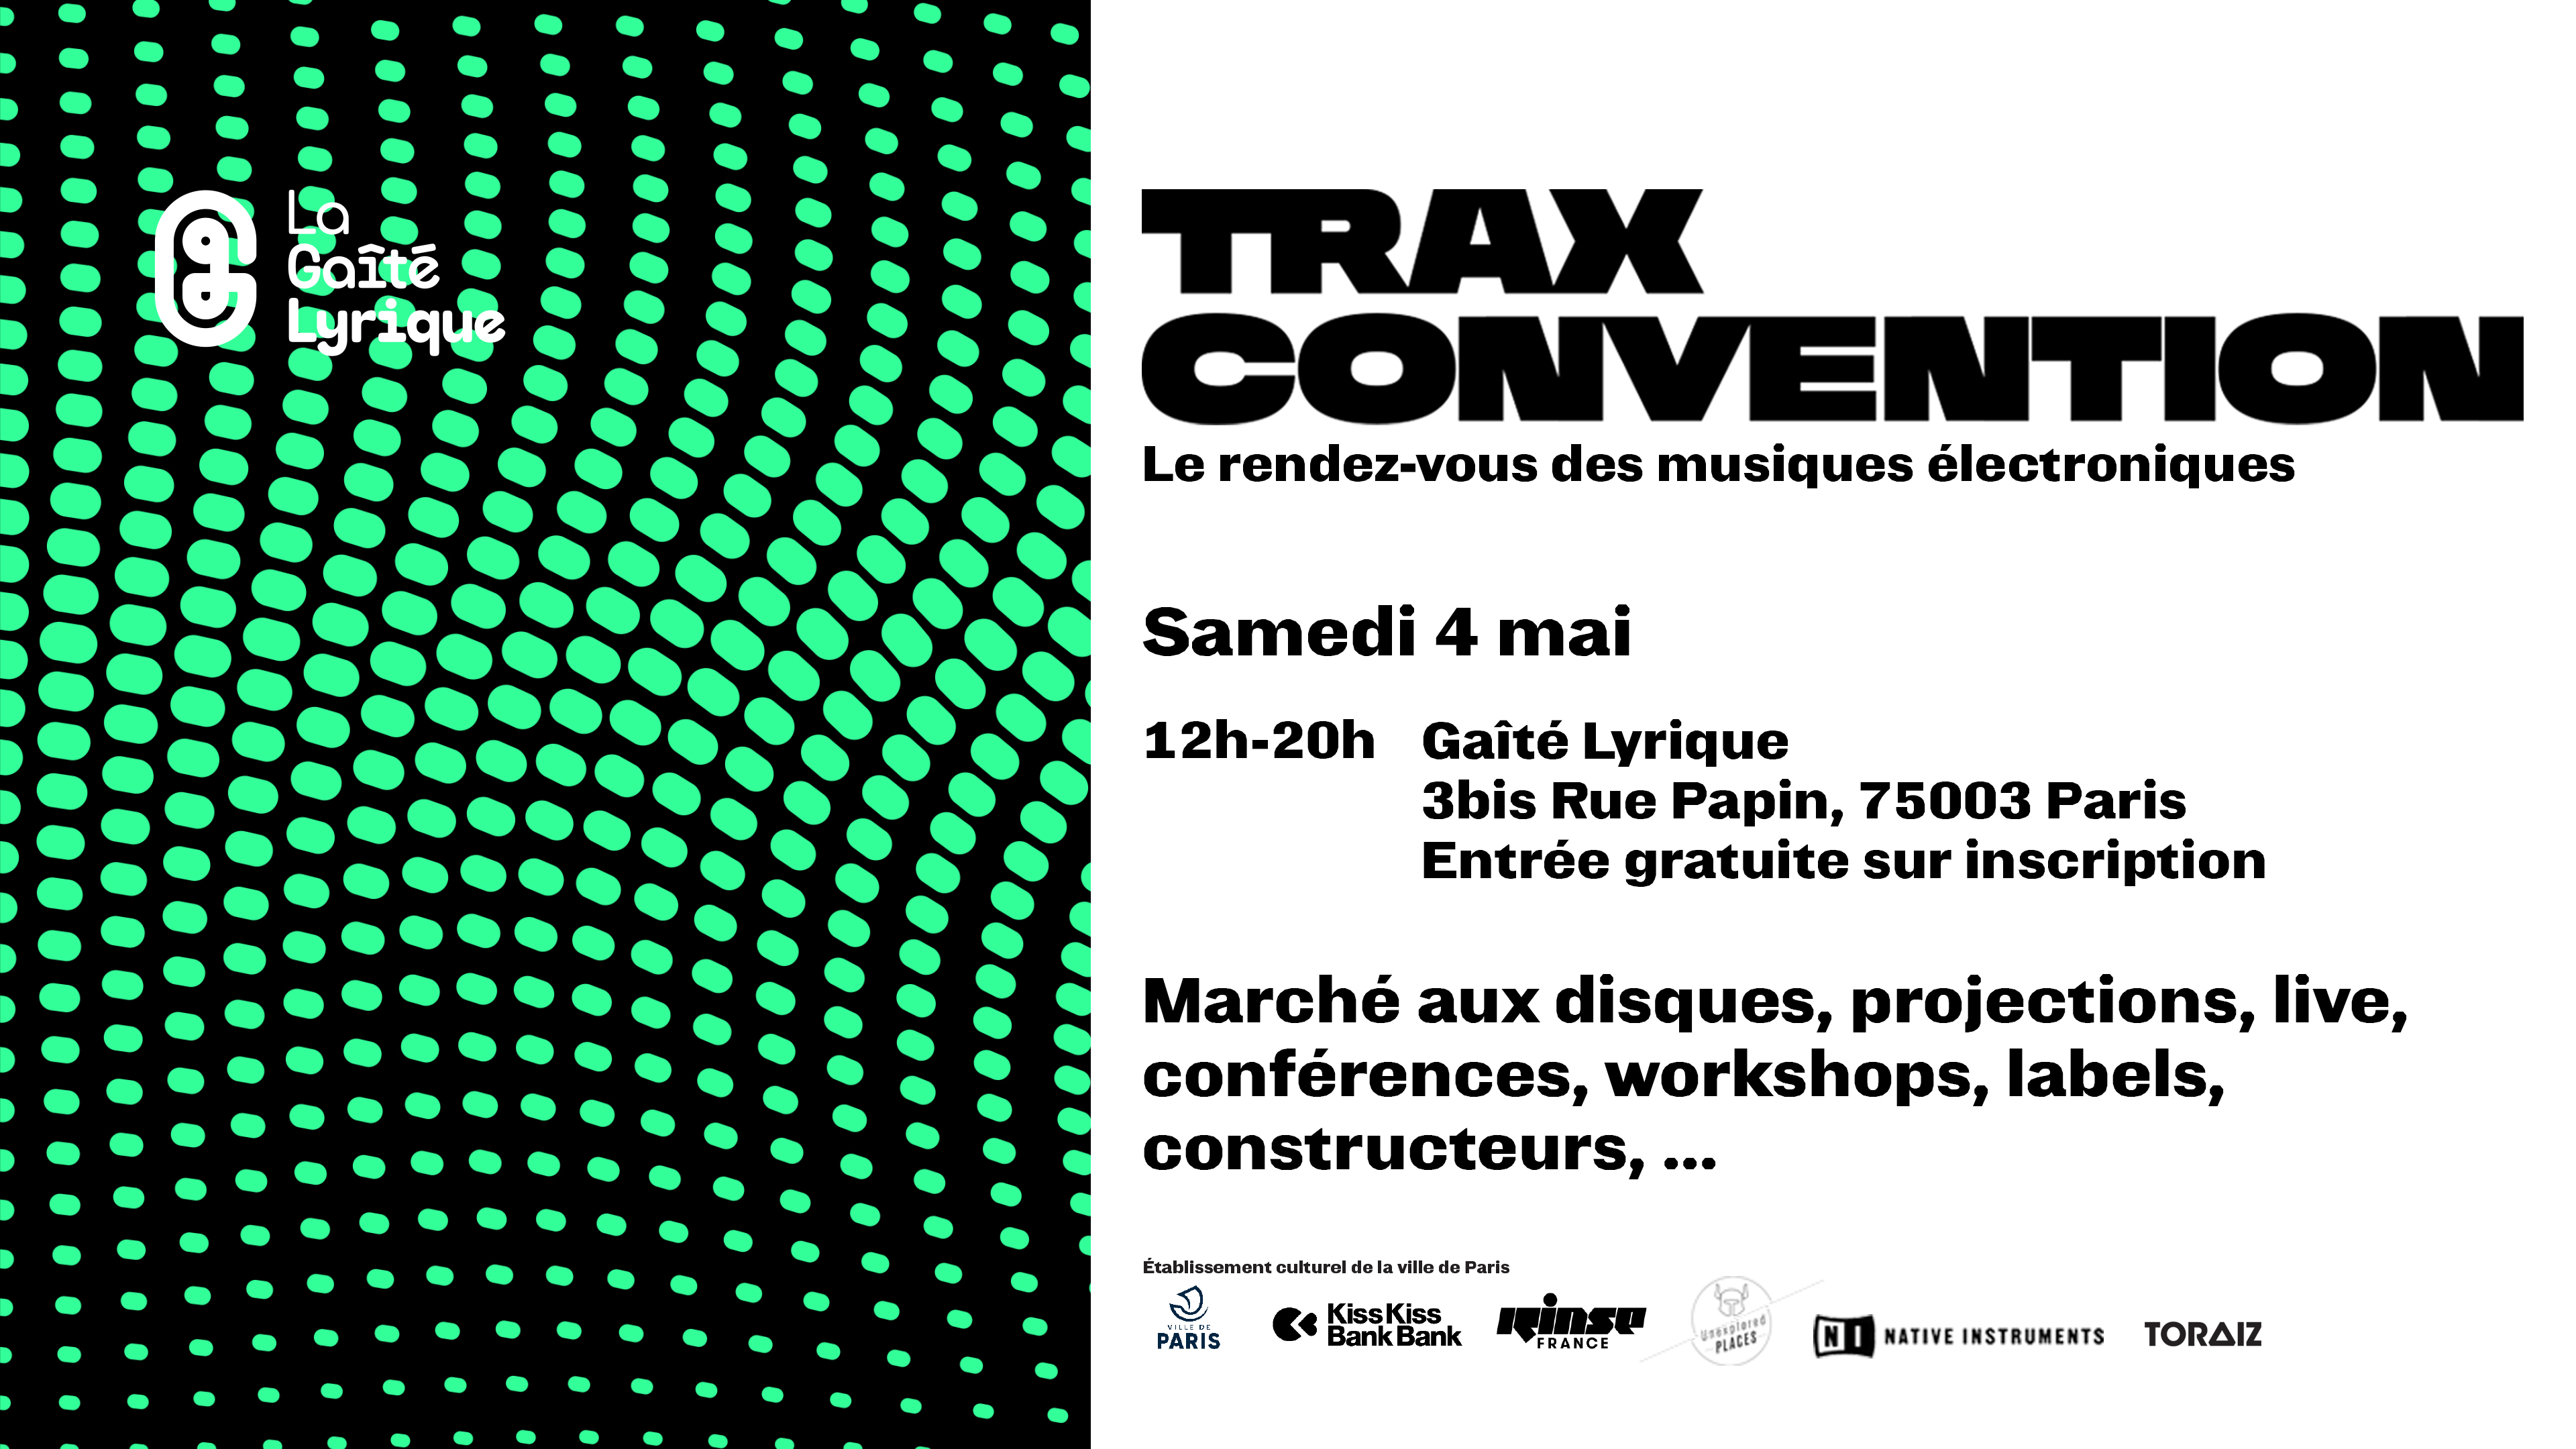 TRAX Convention 2019